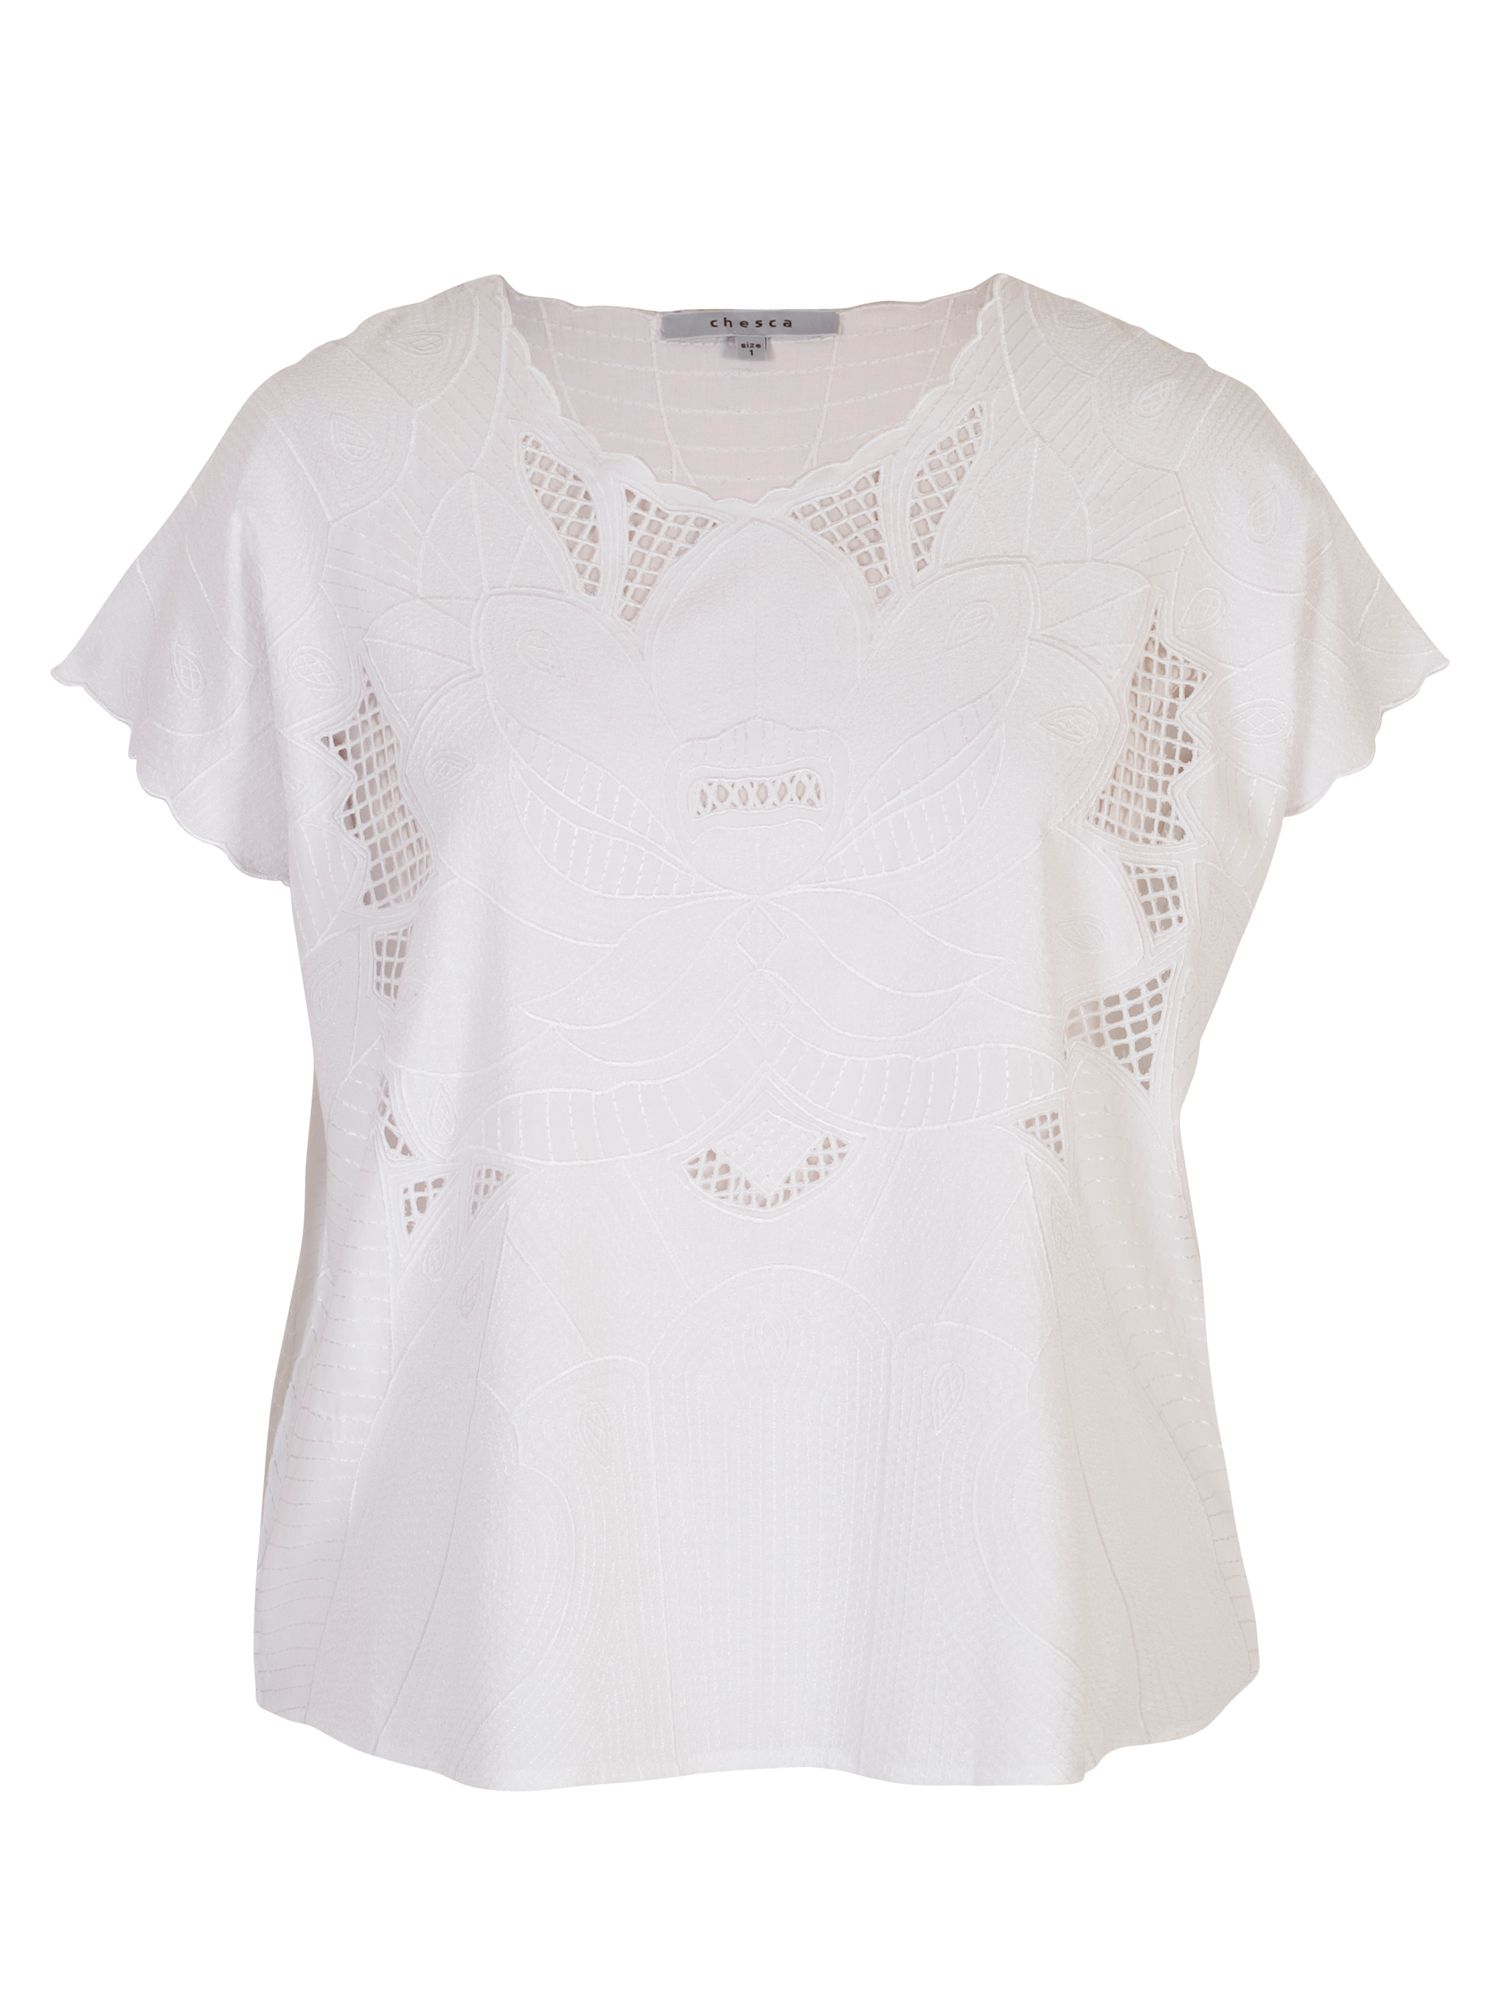 Chesca Embroidered Top, White